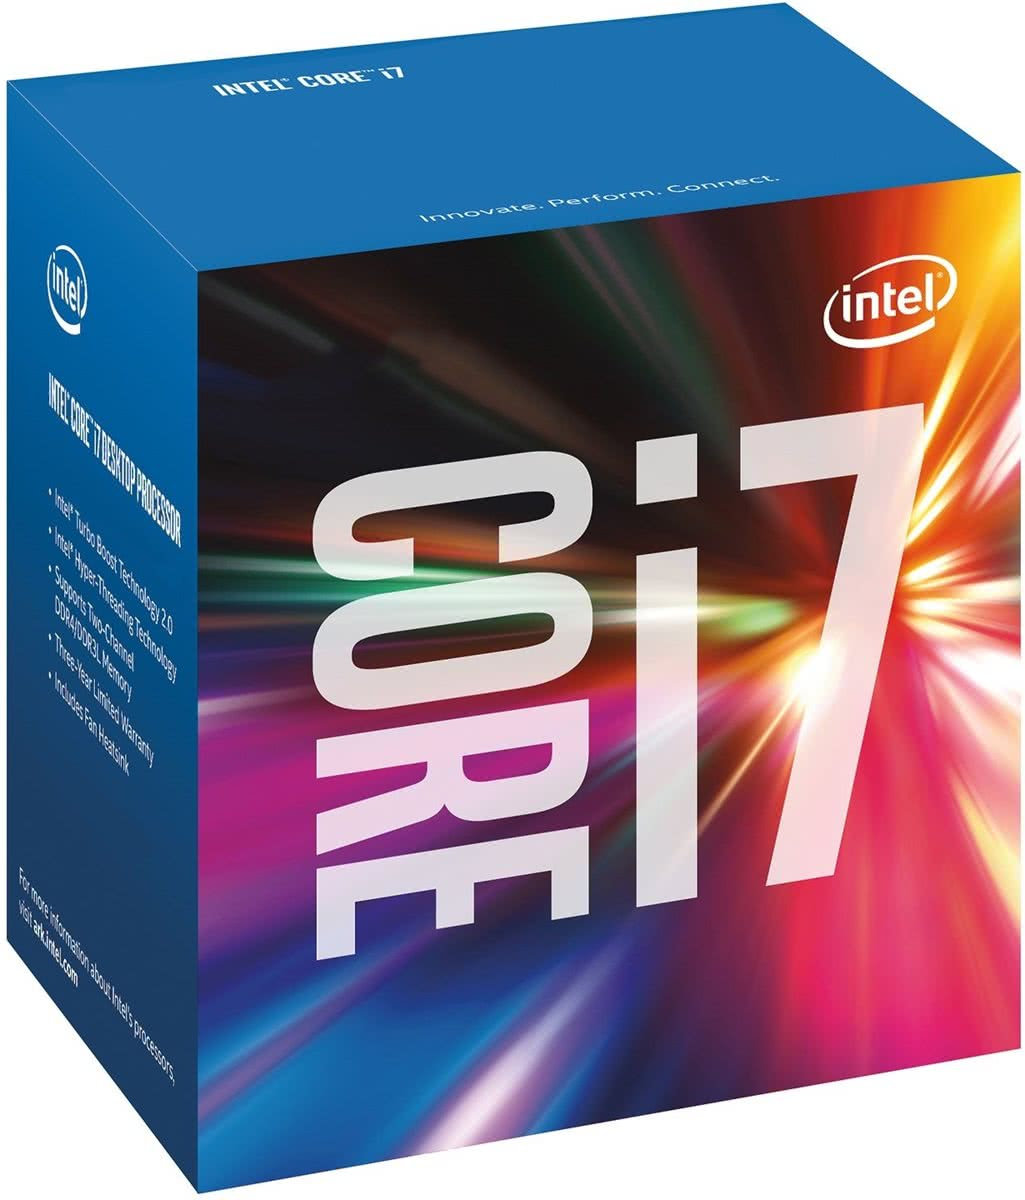 Core ® ™ i7-6850K Processor (15M Cache, up to 3.80 GHz) 3.6GHz 15MB Smart Cache Box processor